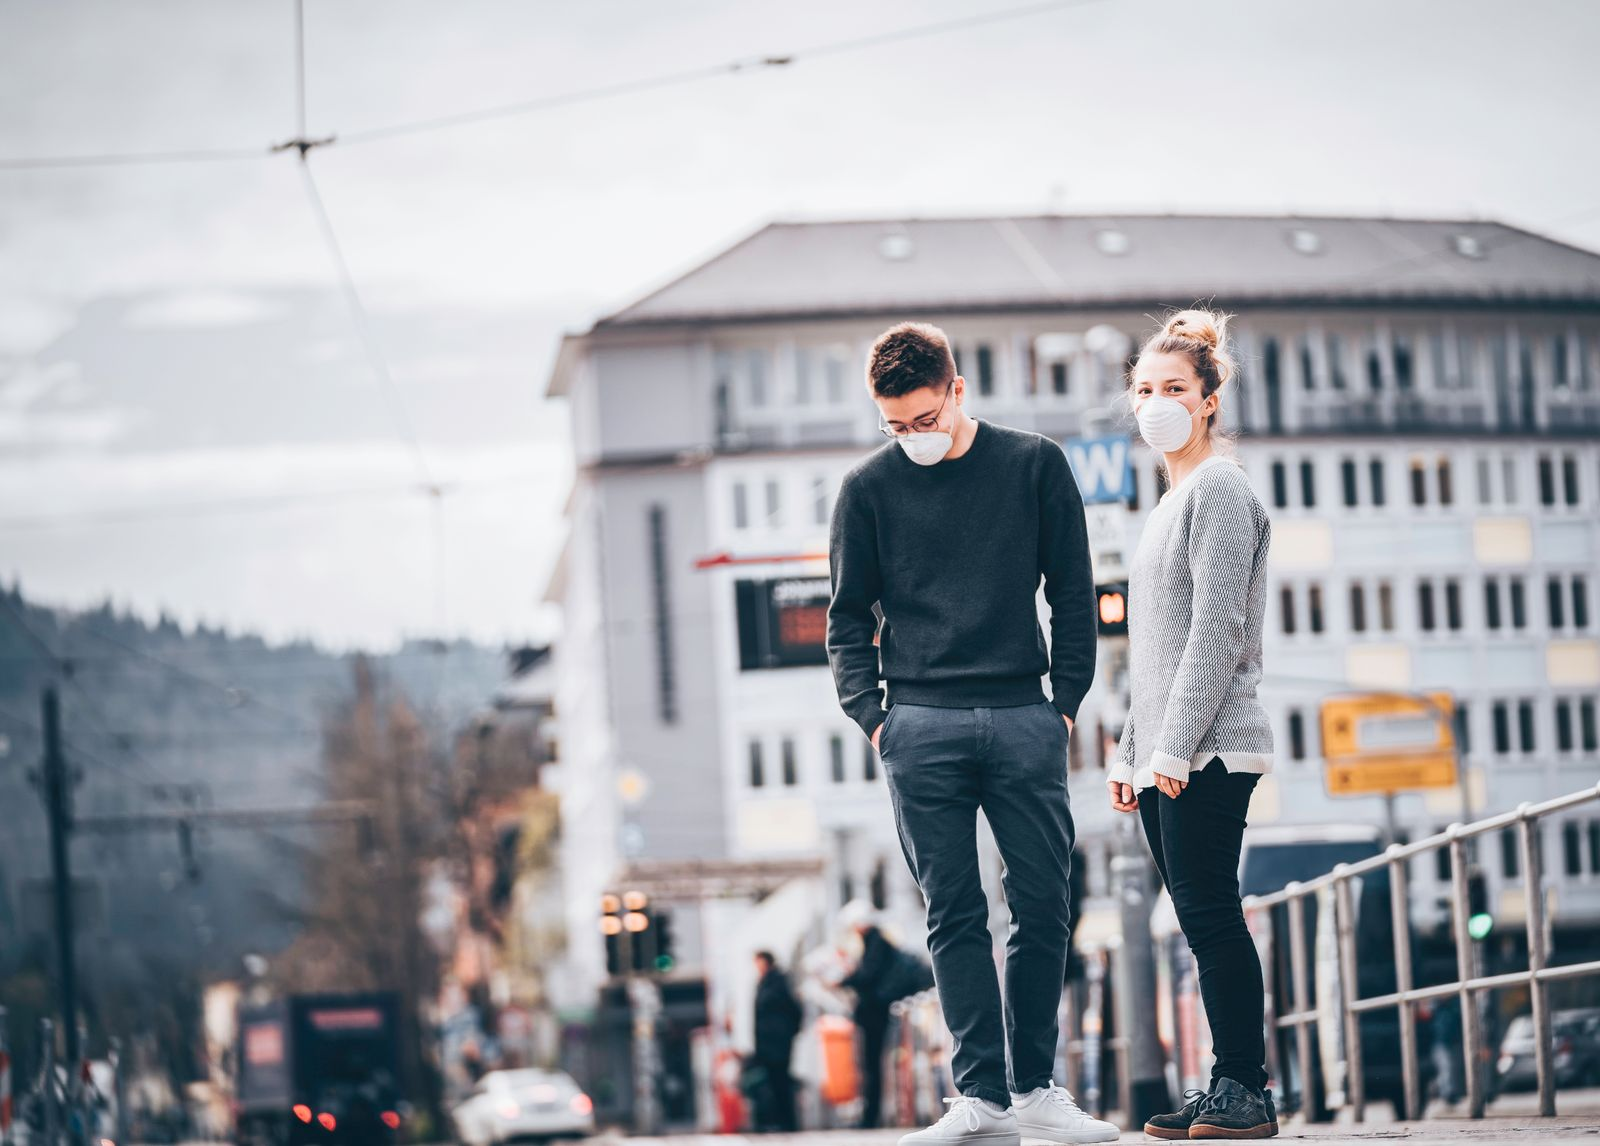 Young couple wait for train to arrive in ghost town